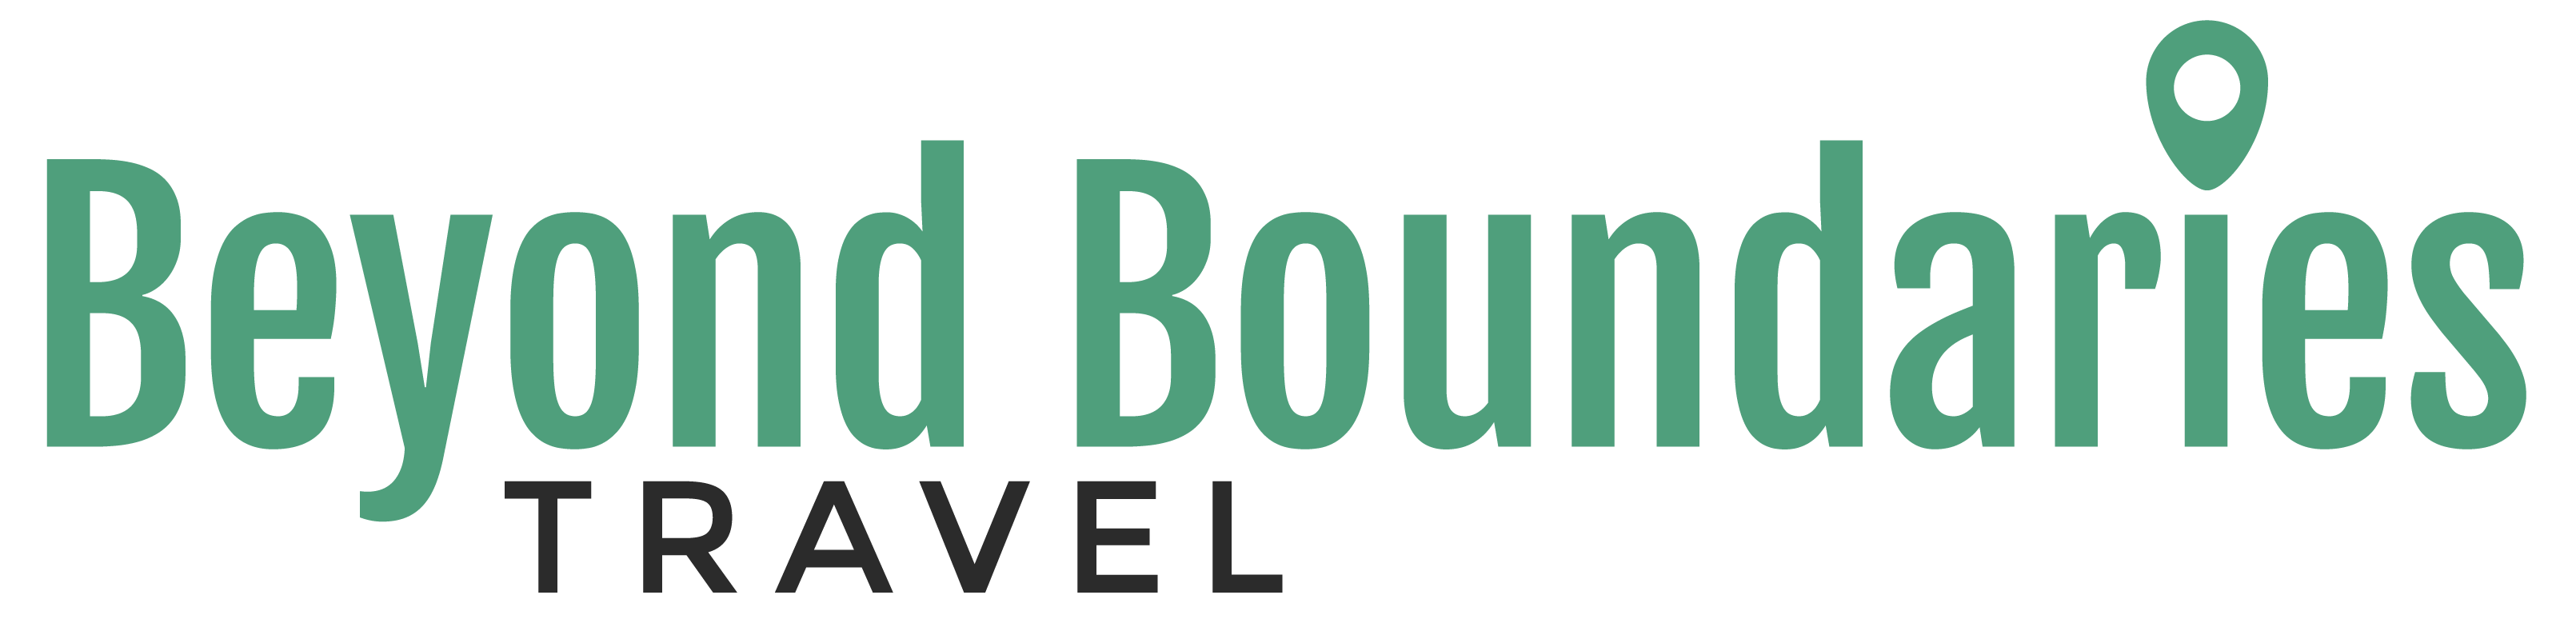 Beyond Boundaries Travel logo